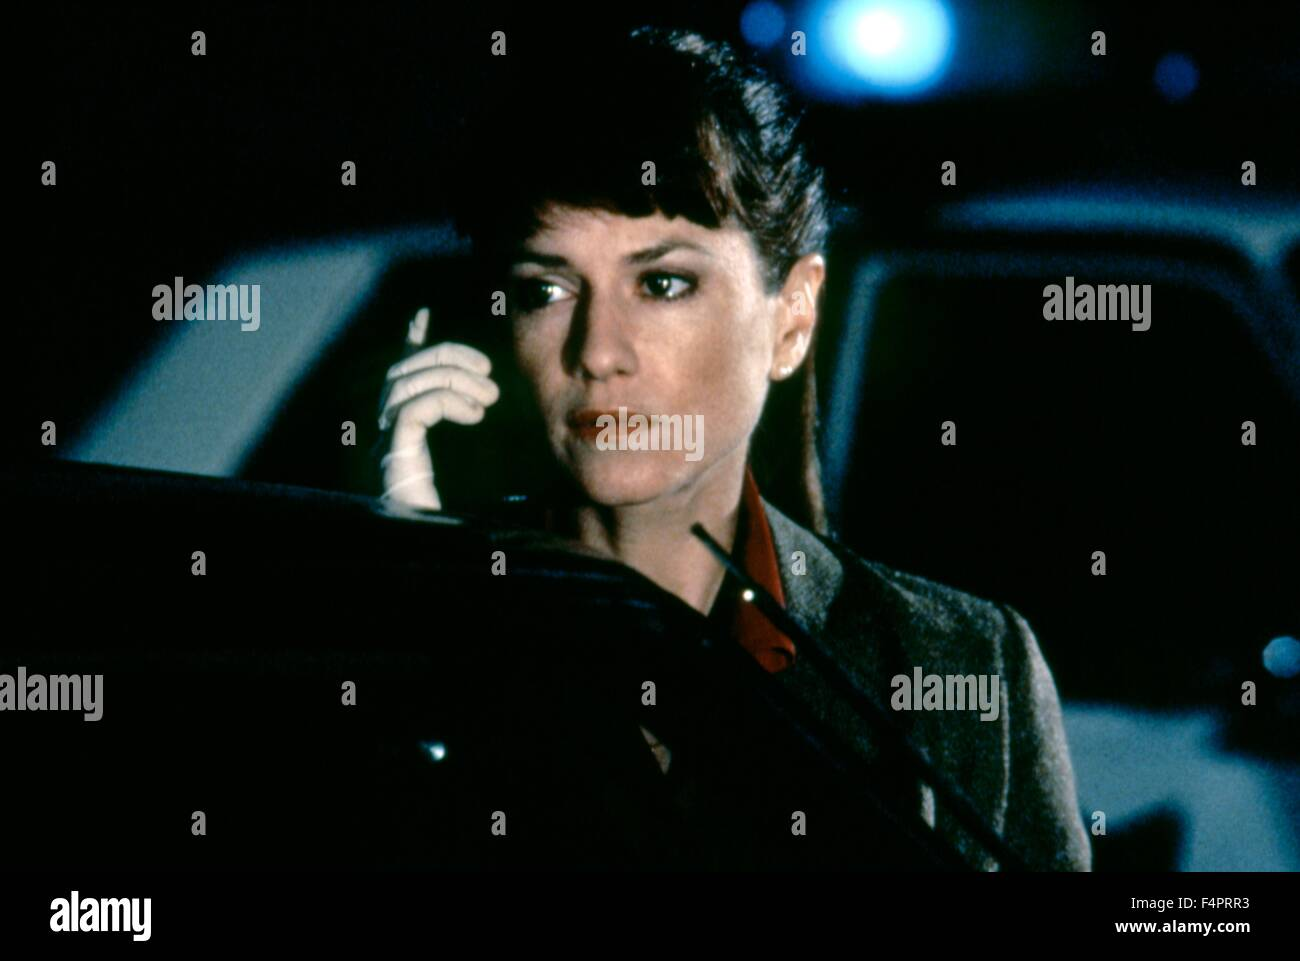 Holly Hunter / Copycat / 1995 directed by Jon Amiel [Warner Bros. Pictures] - Stock Image